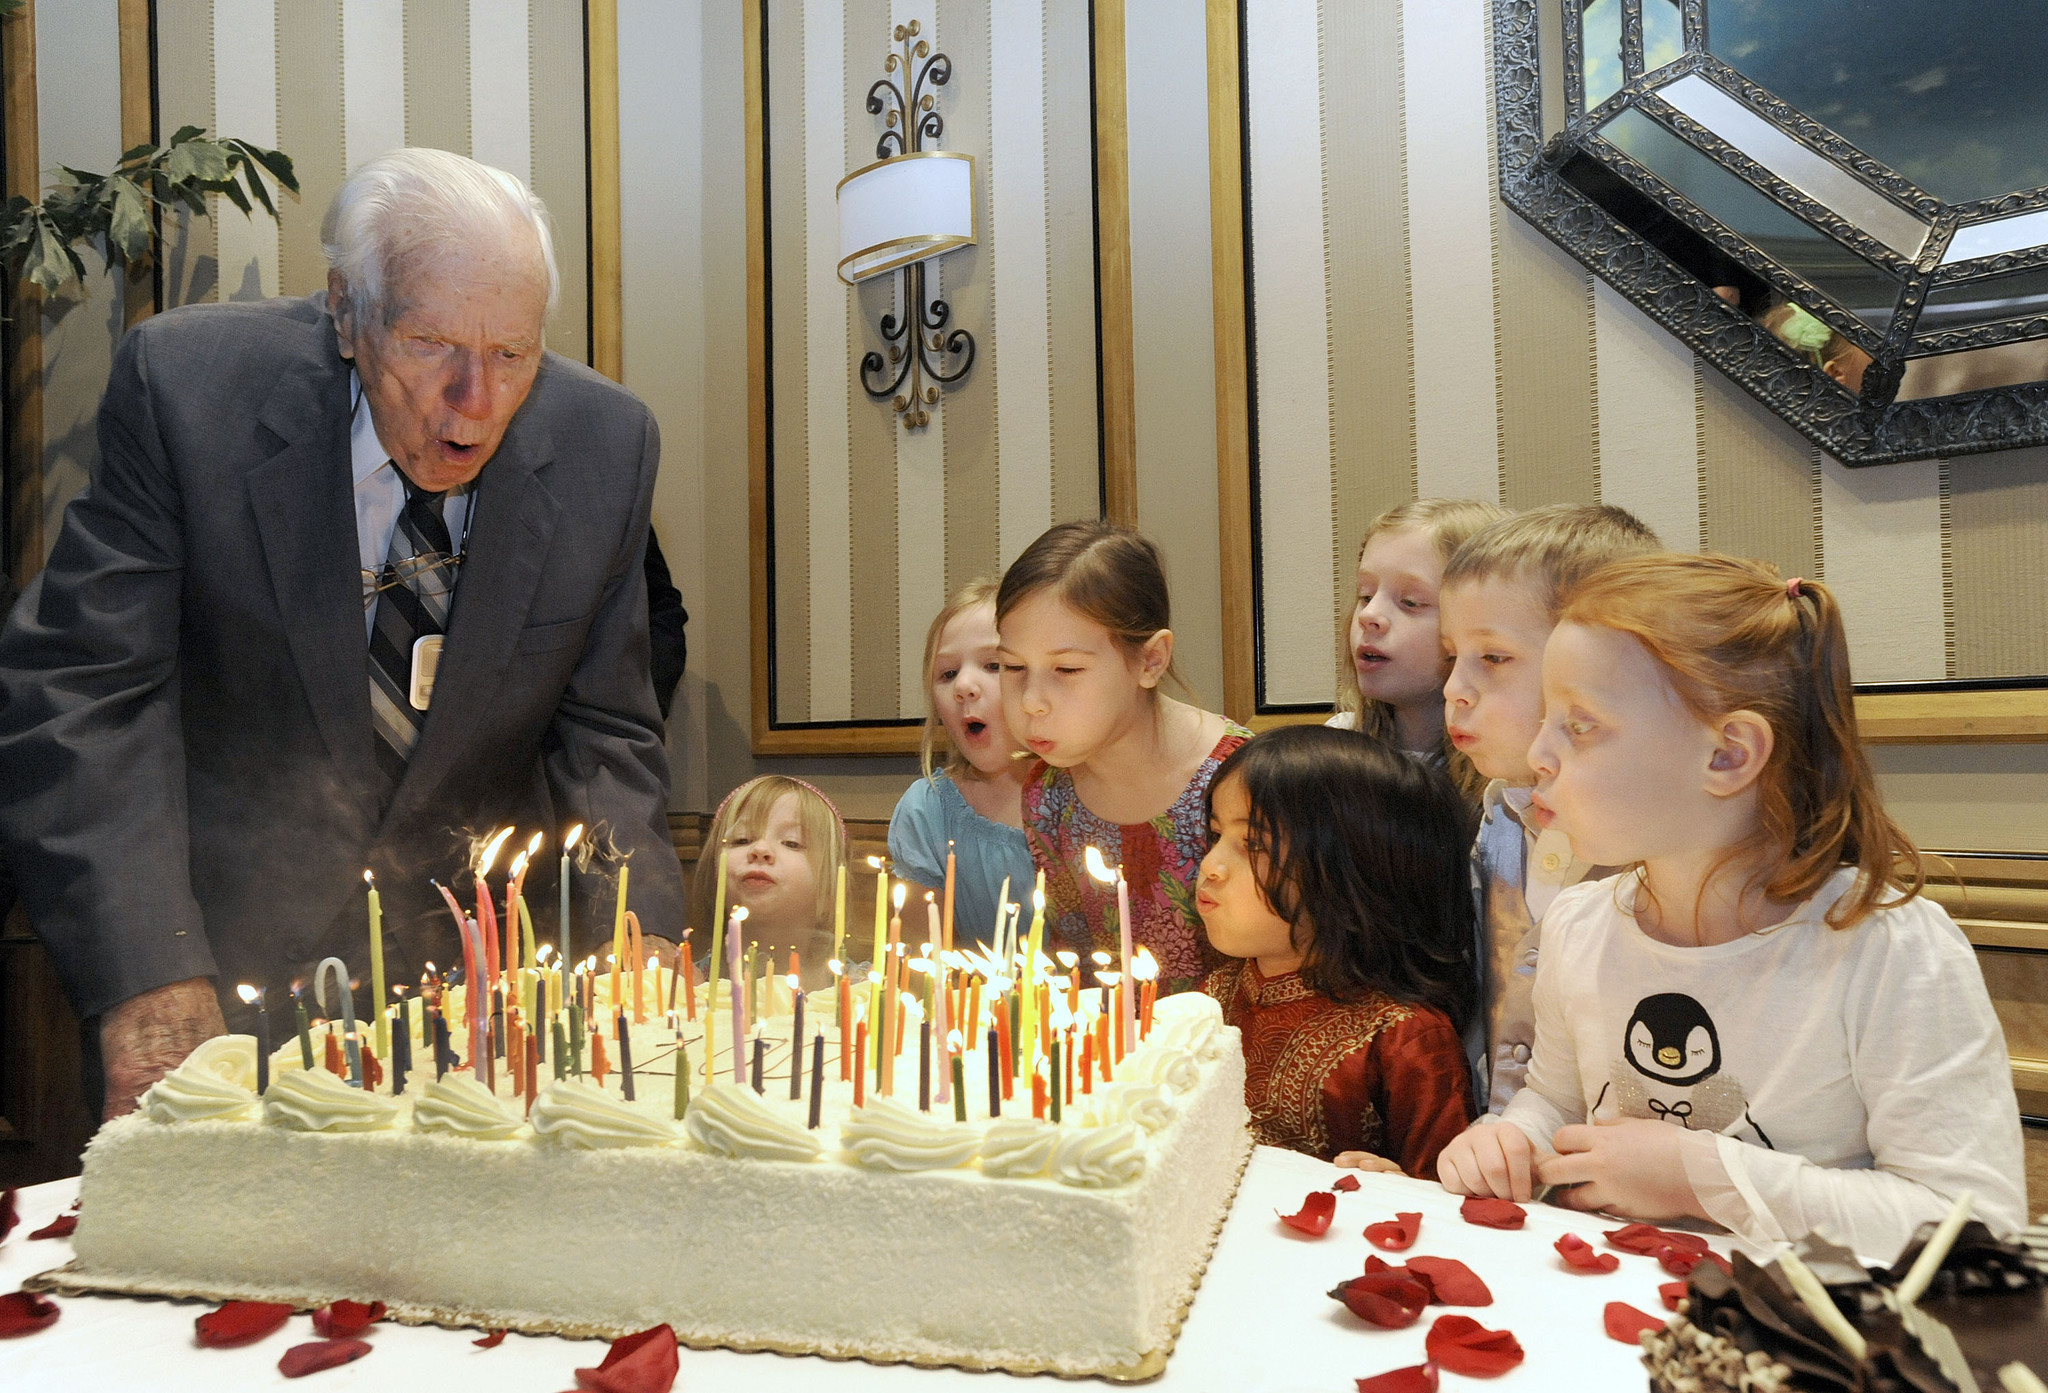 Captain John Slaughter Celebrates His 100th Birthday